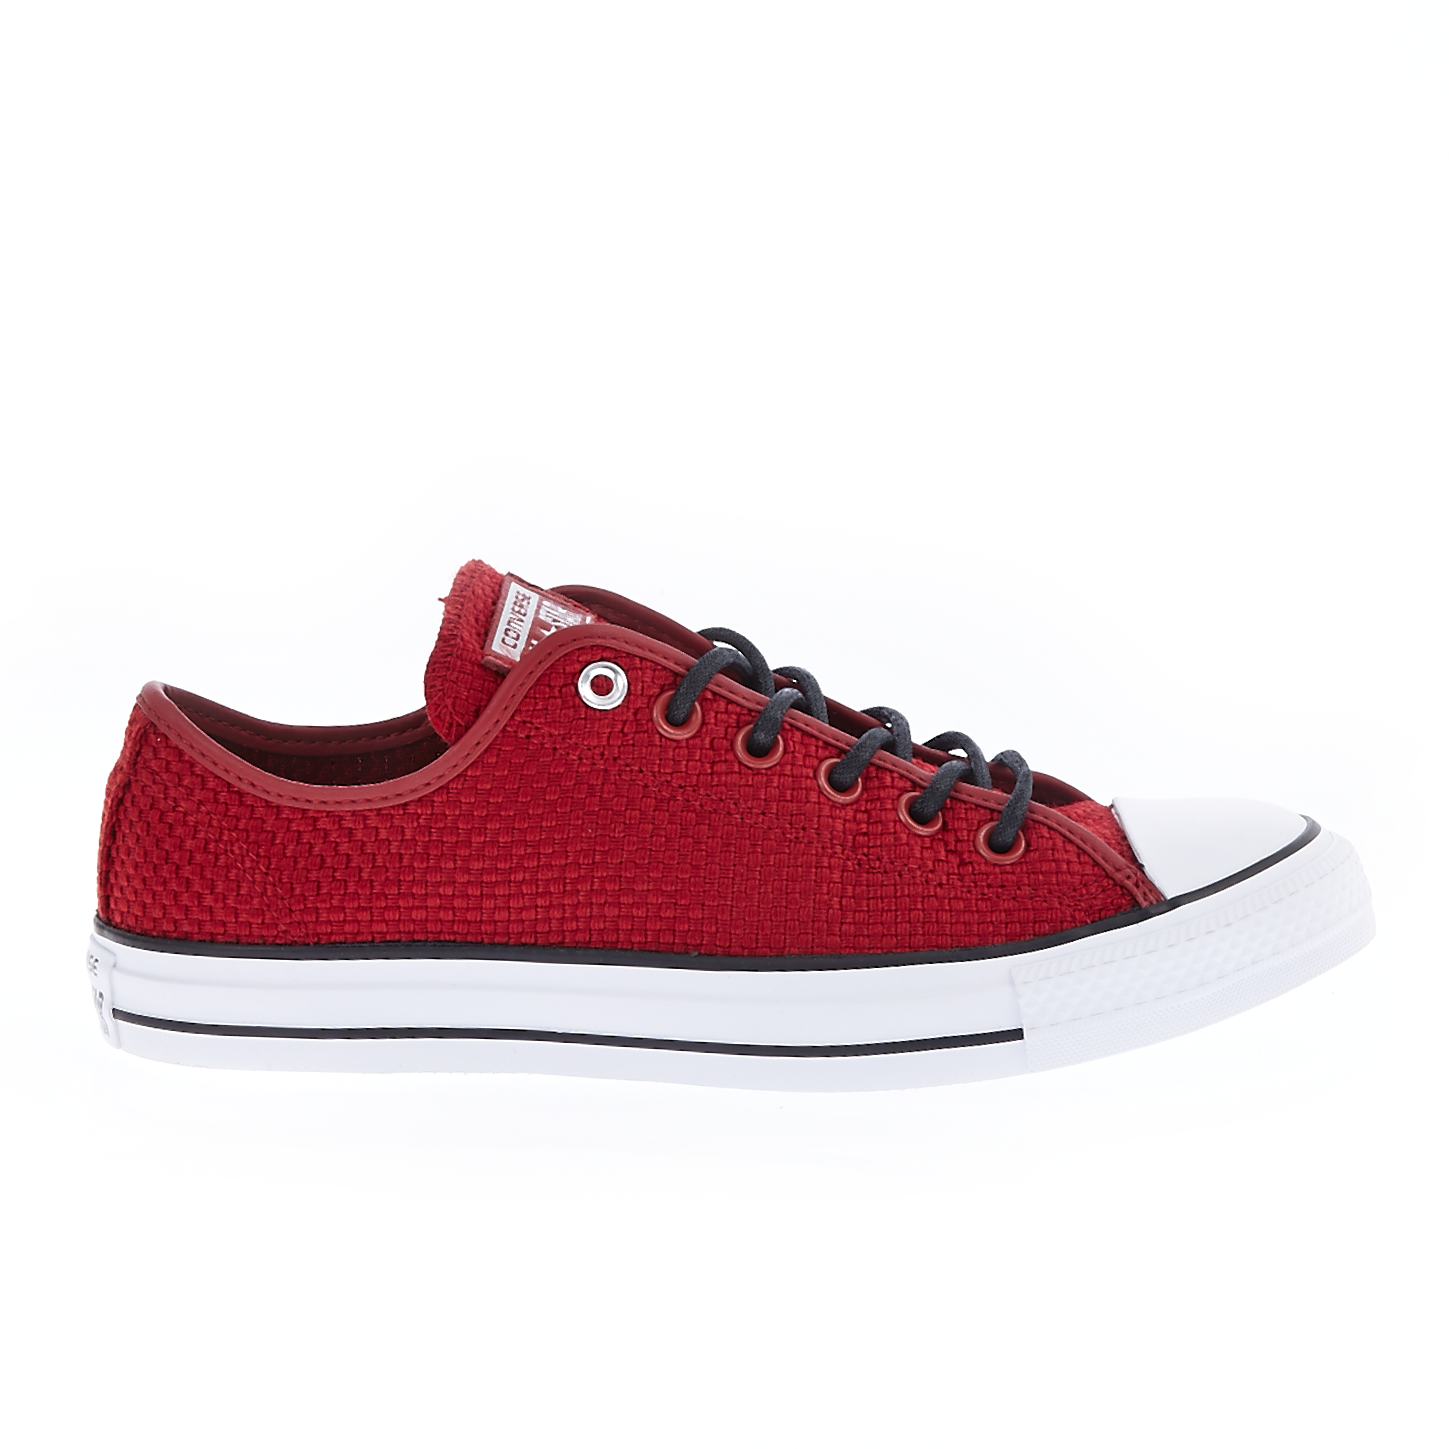 CONVERSE - Unisex παπούτσια Chuck Taylor All Star Ox κόκκινα ανδρικά παπούτσια sneakers